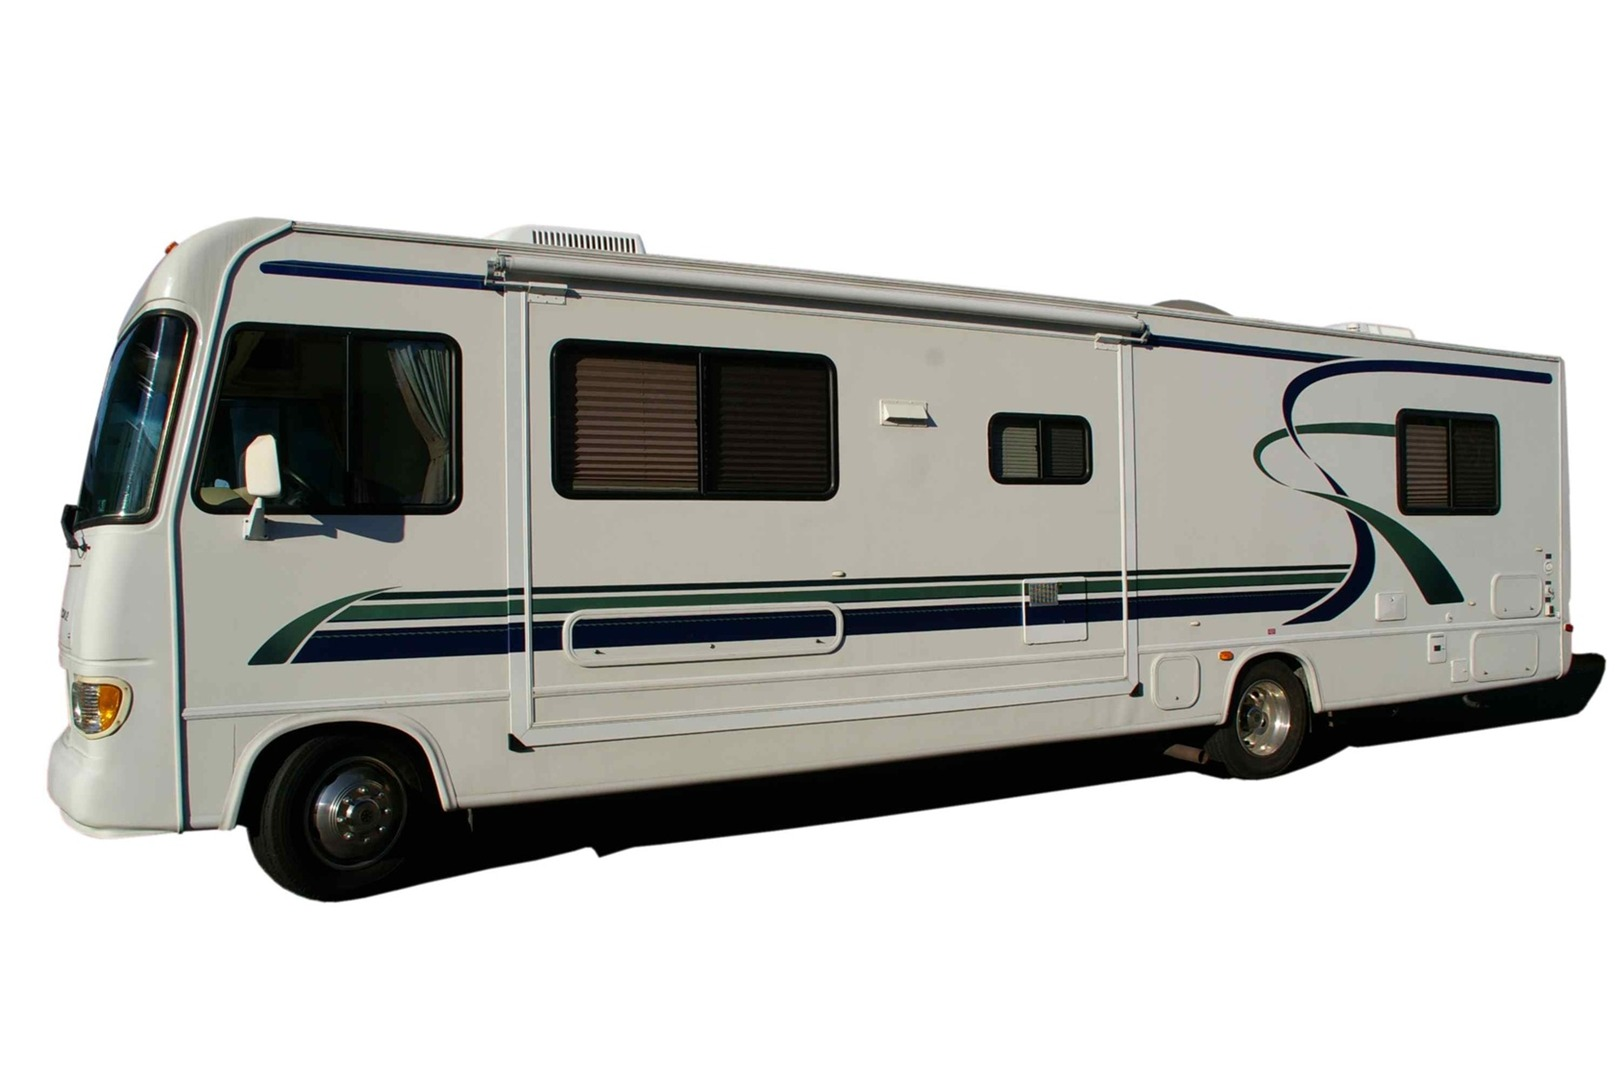 Rv Insurance Quote The Surance Group Inc Auto Insurance Homeowners Insurance